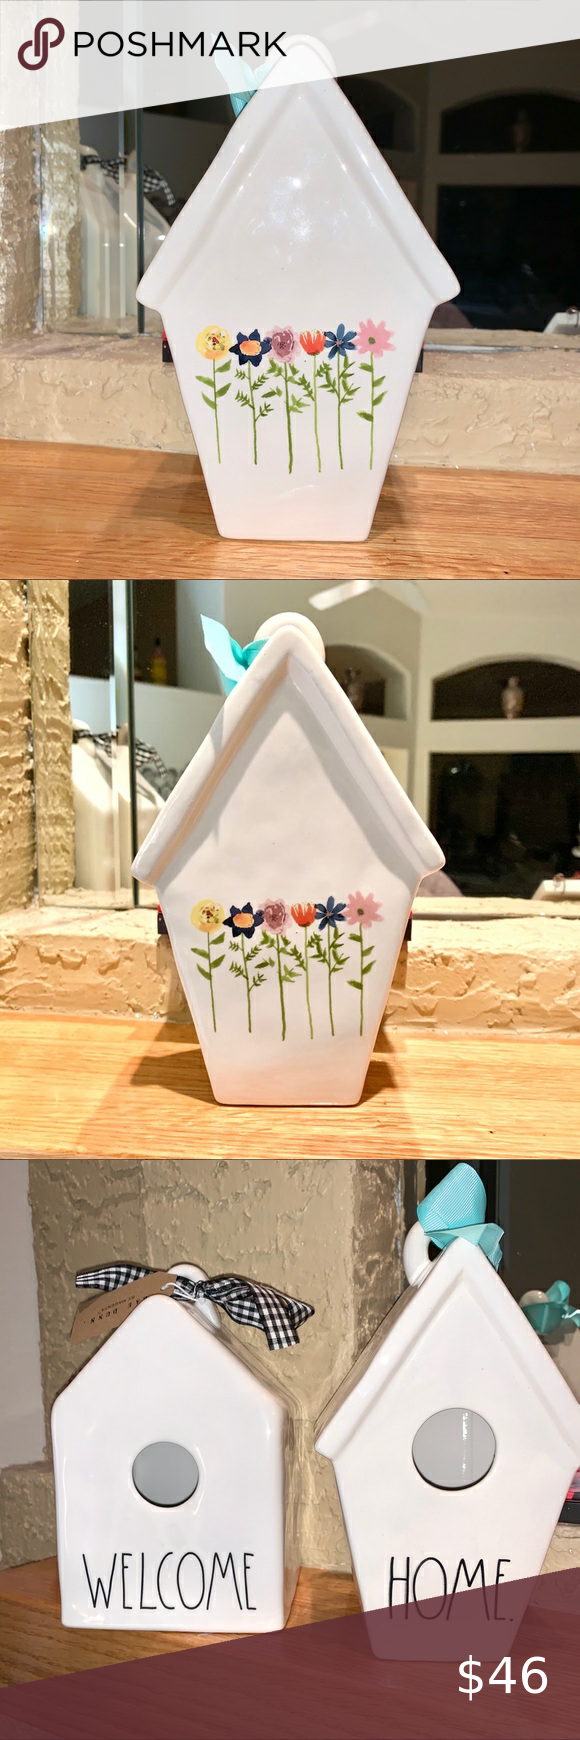 Photo of RAE DUNN SLANT ROOF BLOOM BIRDHOUSE I think this is called the Bloom pattern.  S…